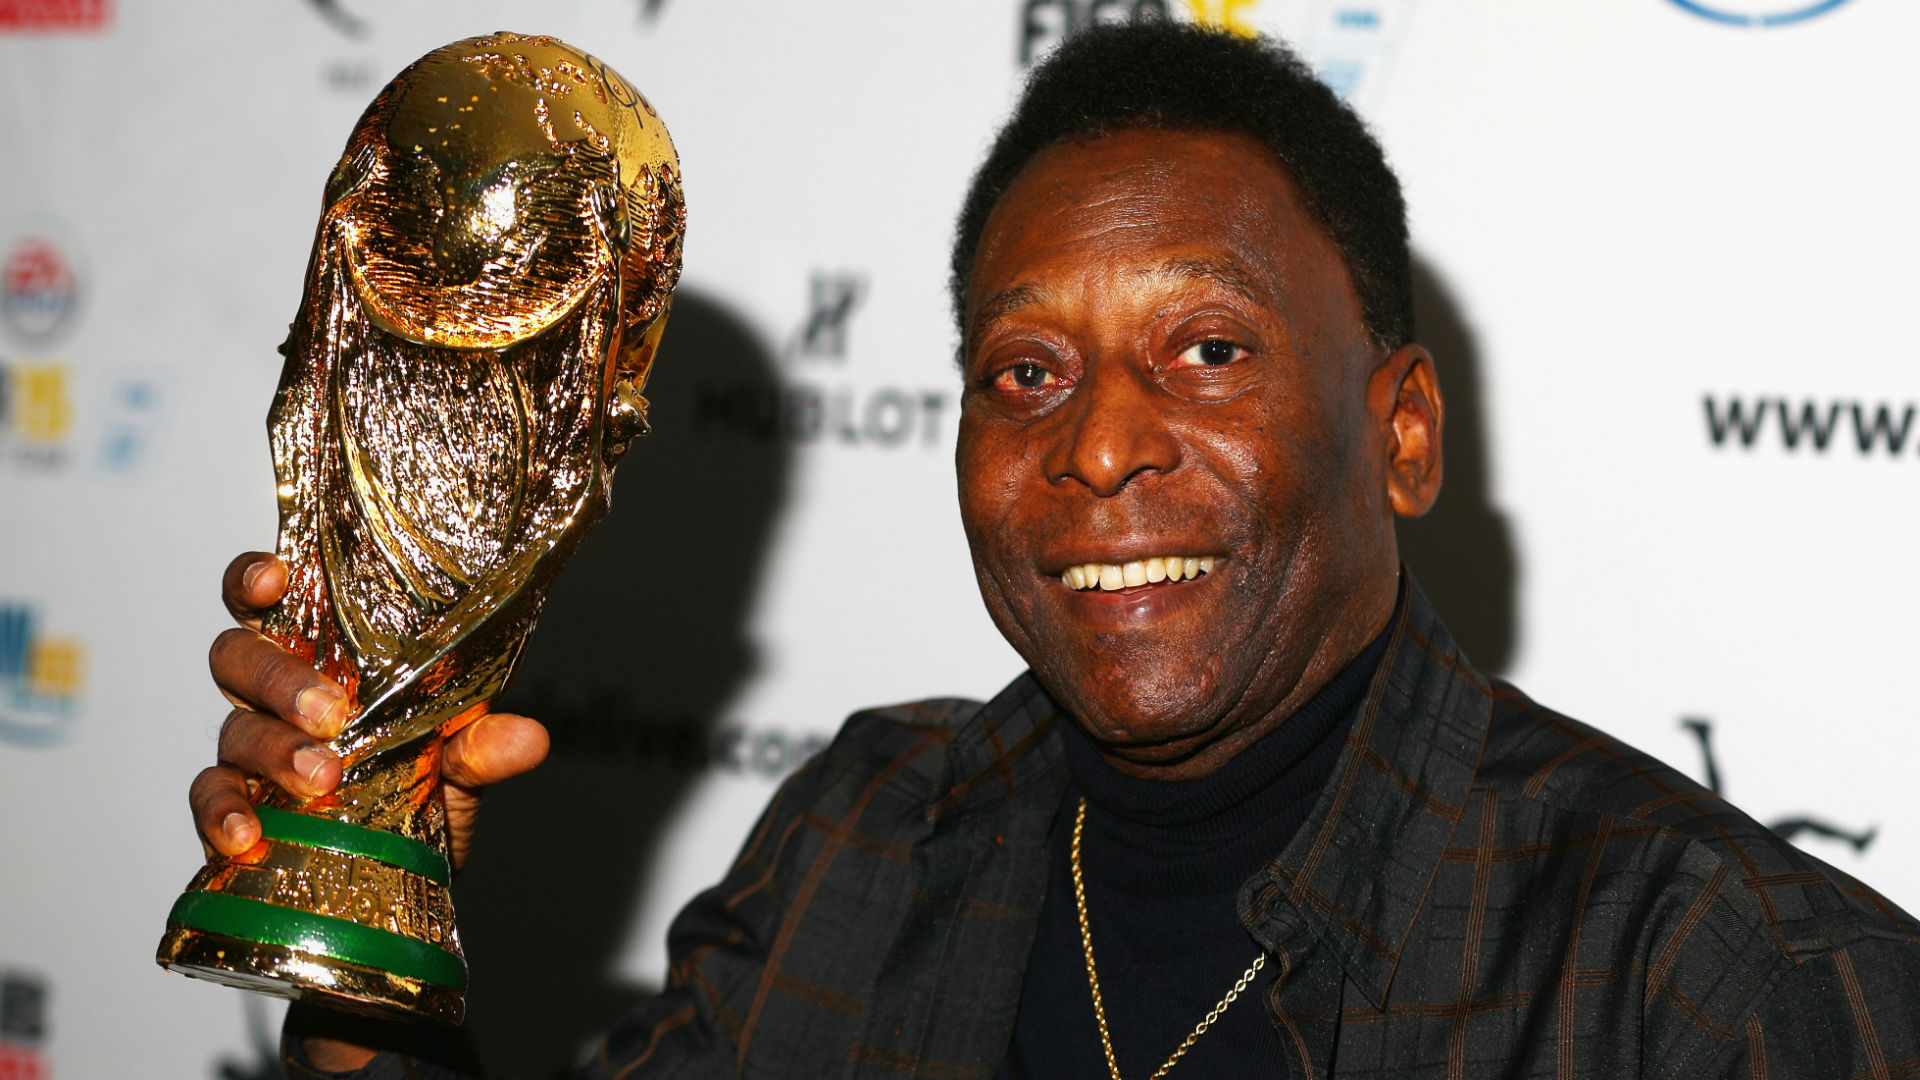 Pelé says U.S. deserves to host 2026 World Cup